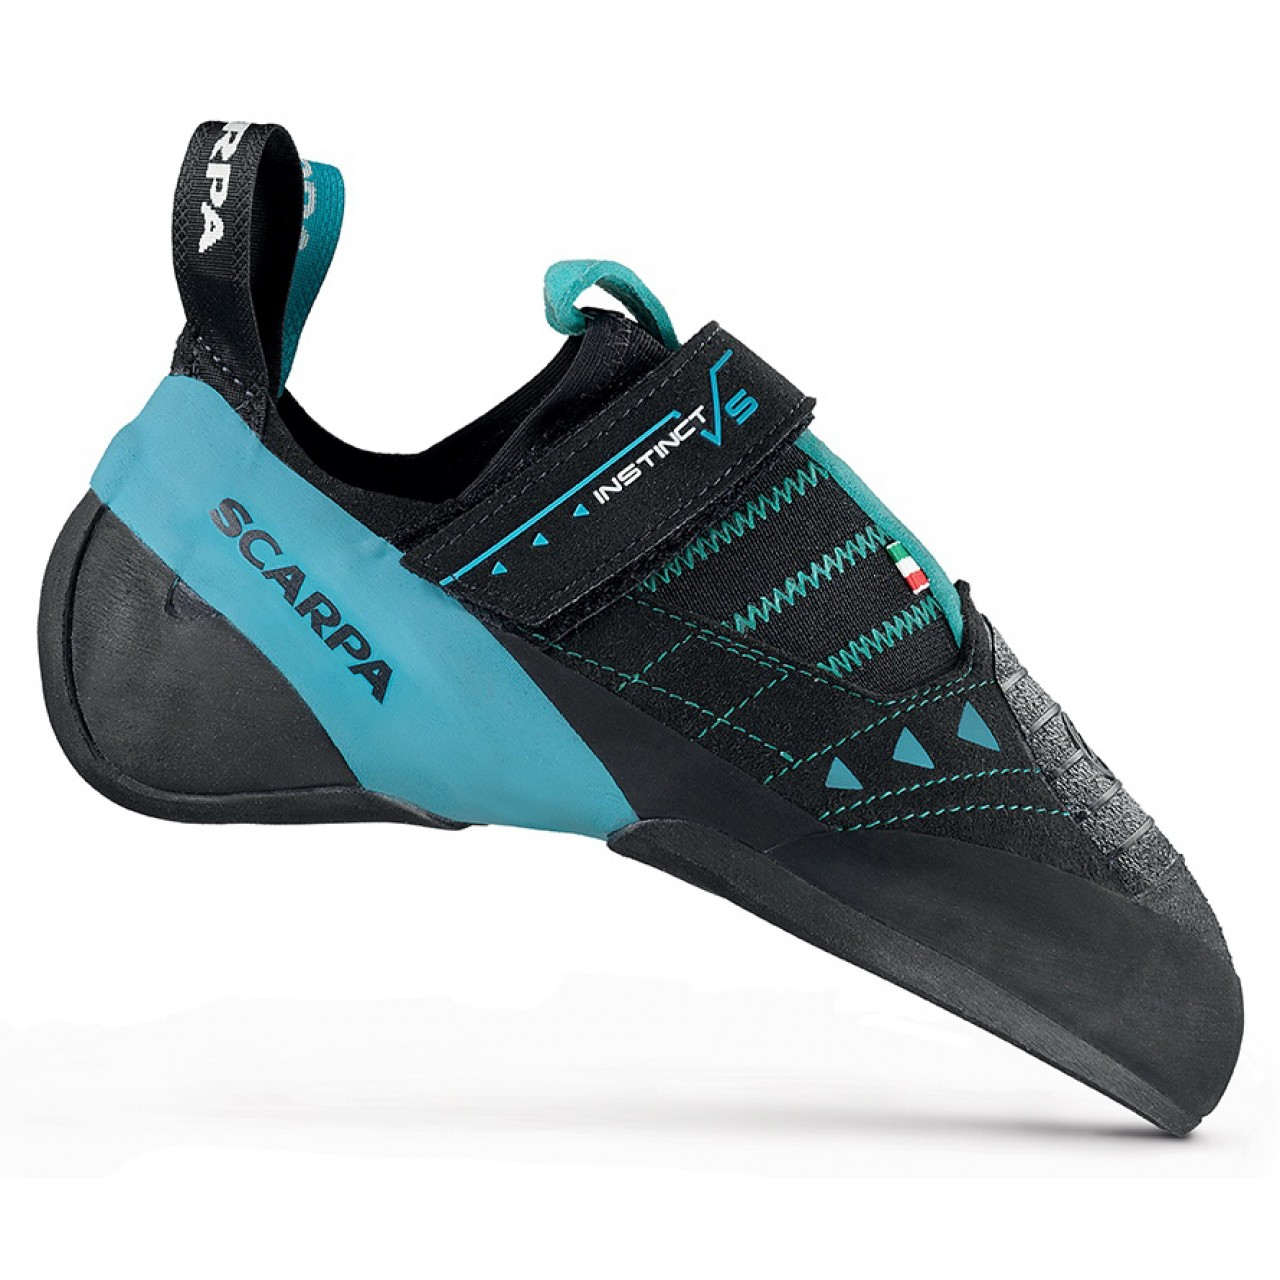 5b3aa510f3 The Scarpa Instinct VS-R is essentially a softer version of the incredibly  popular Instinct VS